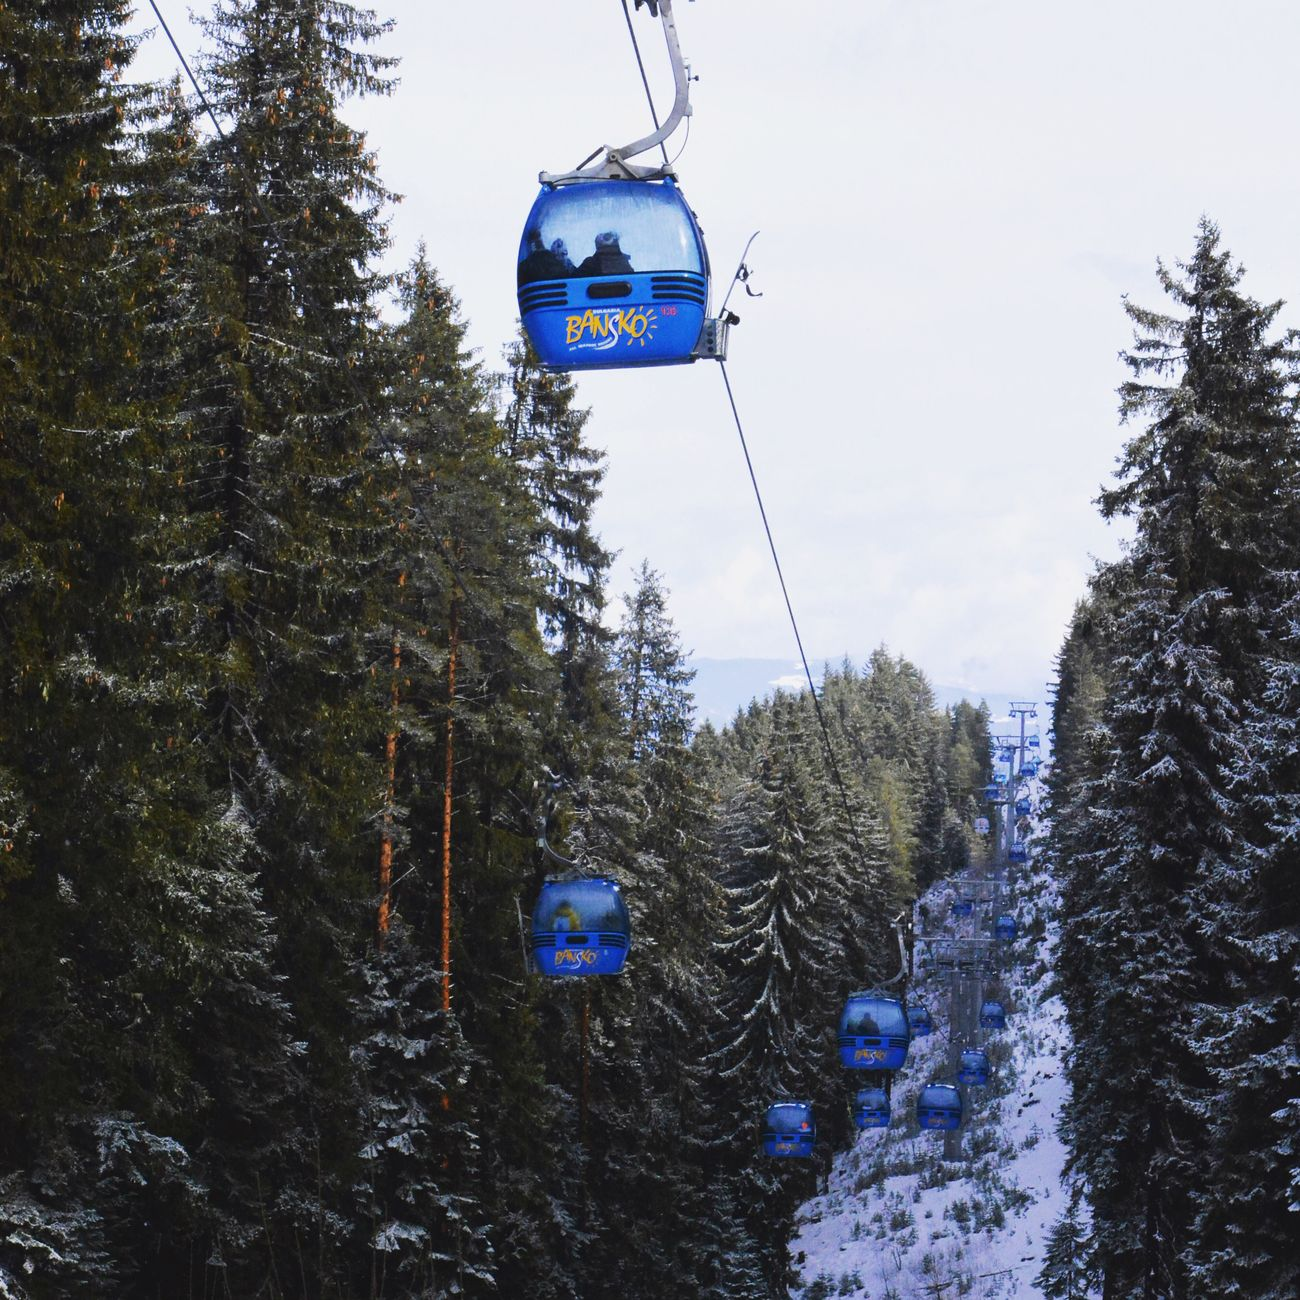 Winter Snow Tree Cold Temperature Nature Pine Tree Beauty In Nature Forest Scenics Tranquility Tranquil Scene Ski Lift Growth Landscape Outdoors Day No People Overhead Cable Car Coniferous Tree Mountain